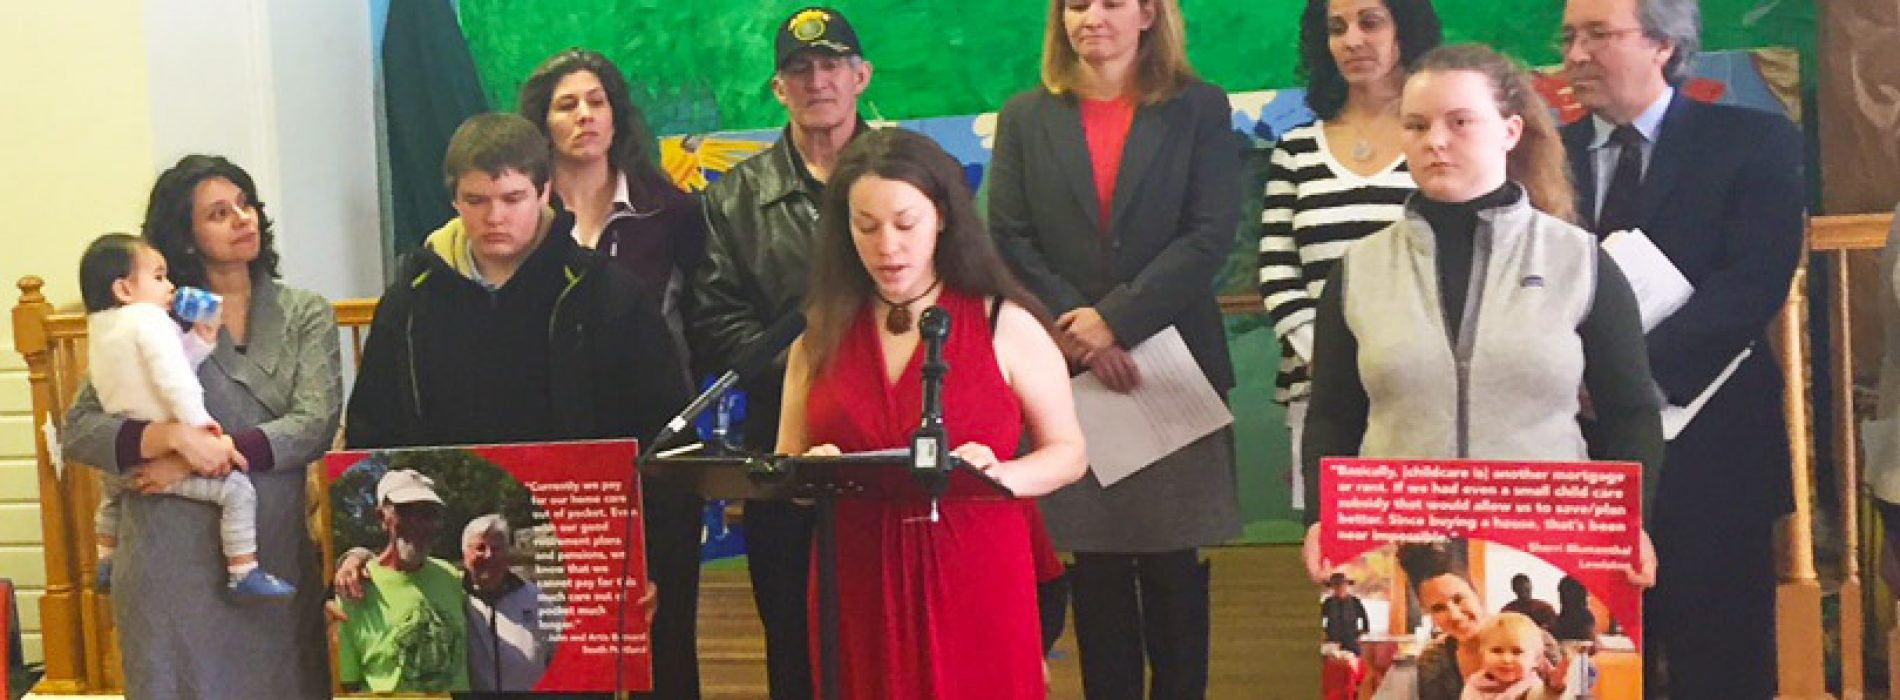 Mainers launch campaign for guaranteed child care for kids and home care for seniors